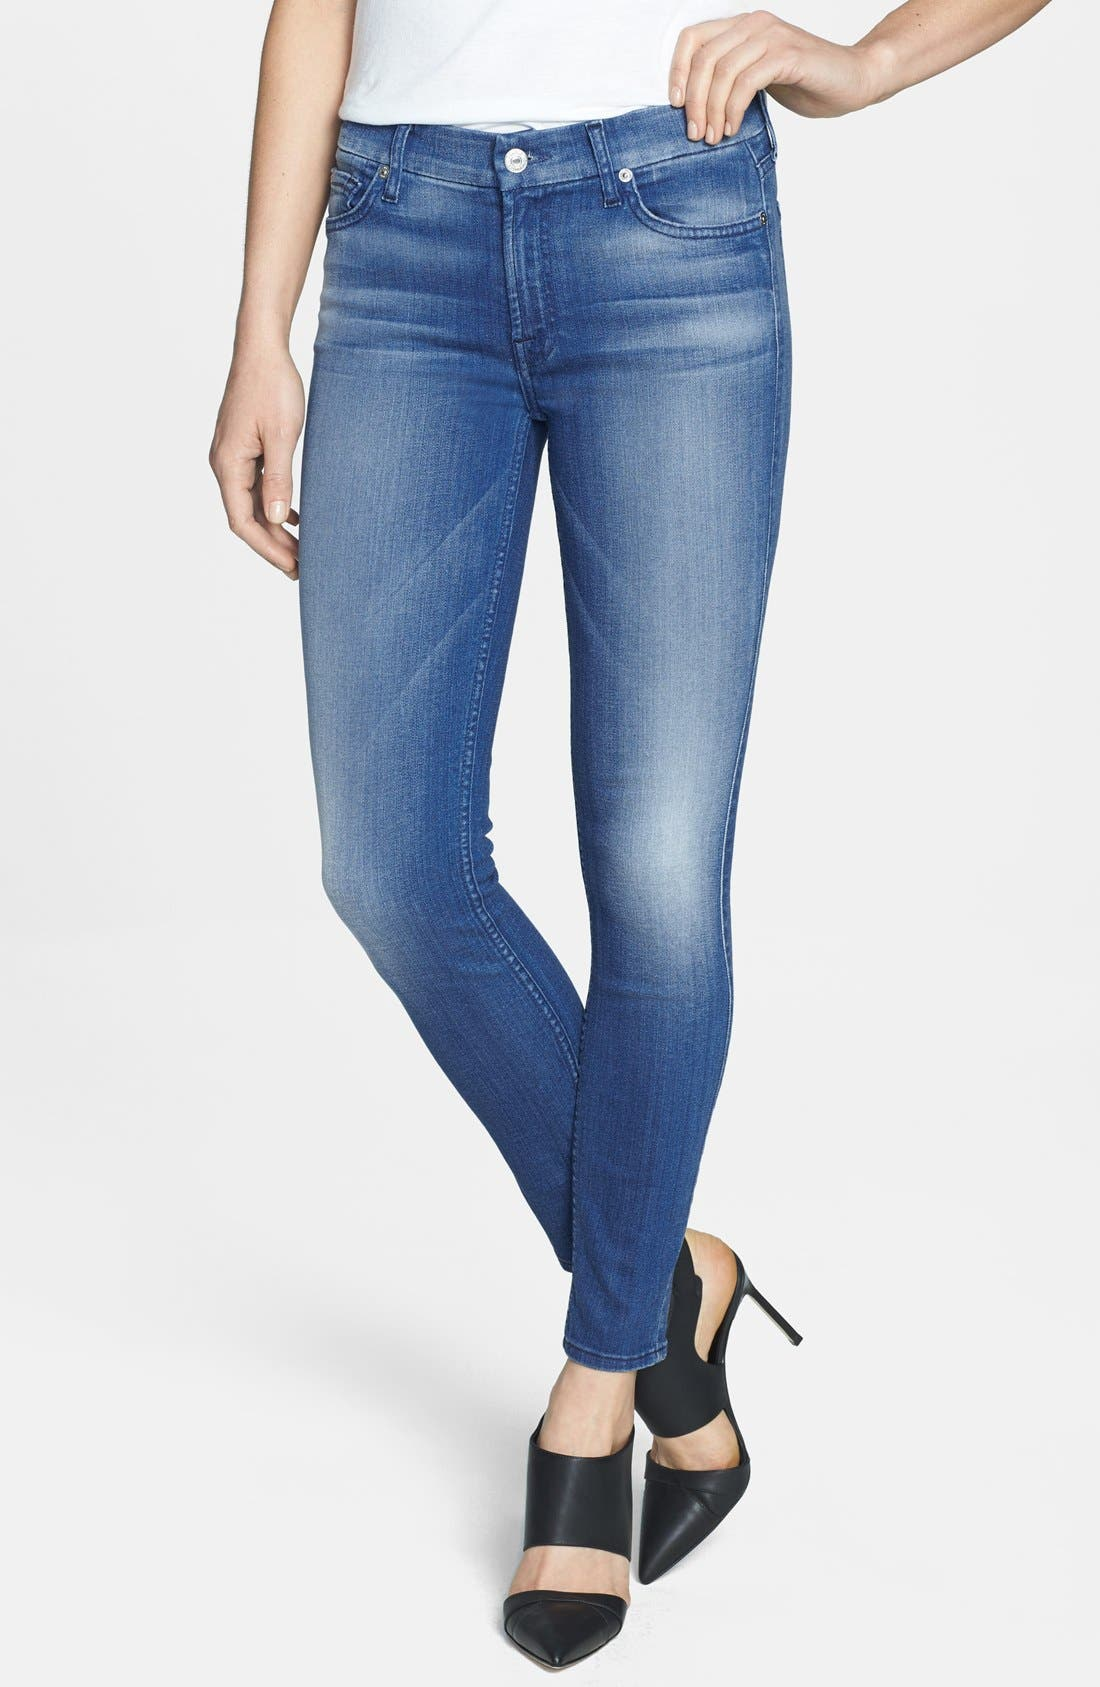 Alternate Image 1 Selected - 7 For All Mankind® 'The Ankle' Skinny Jeans (Slim Illusion Bright Blue)